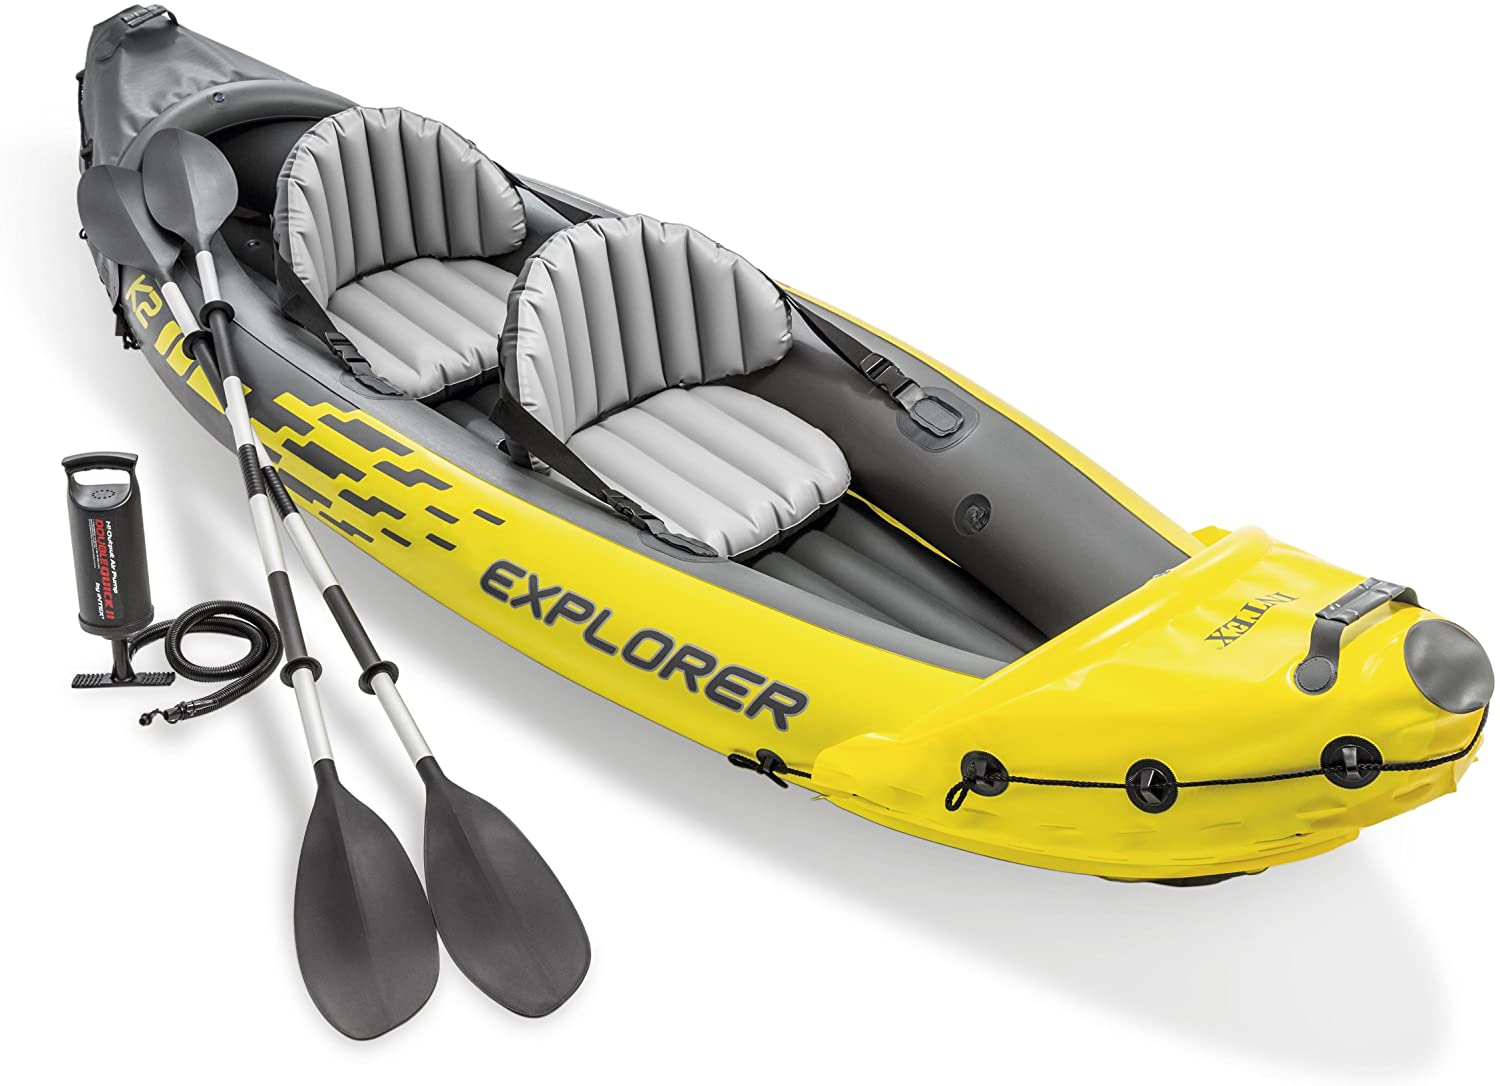 gifts-for-boaters-cheese-kayak